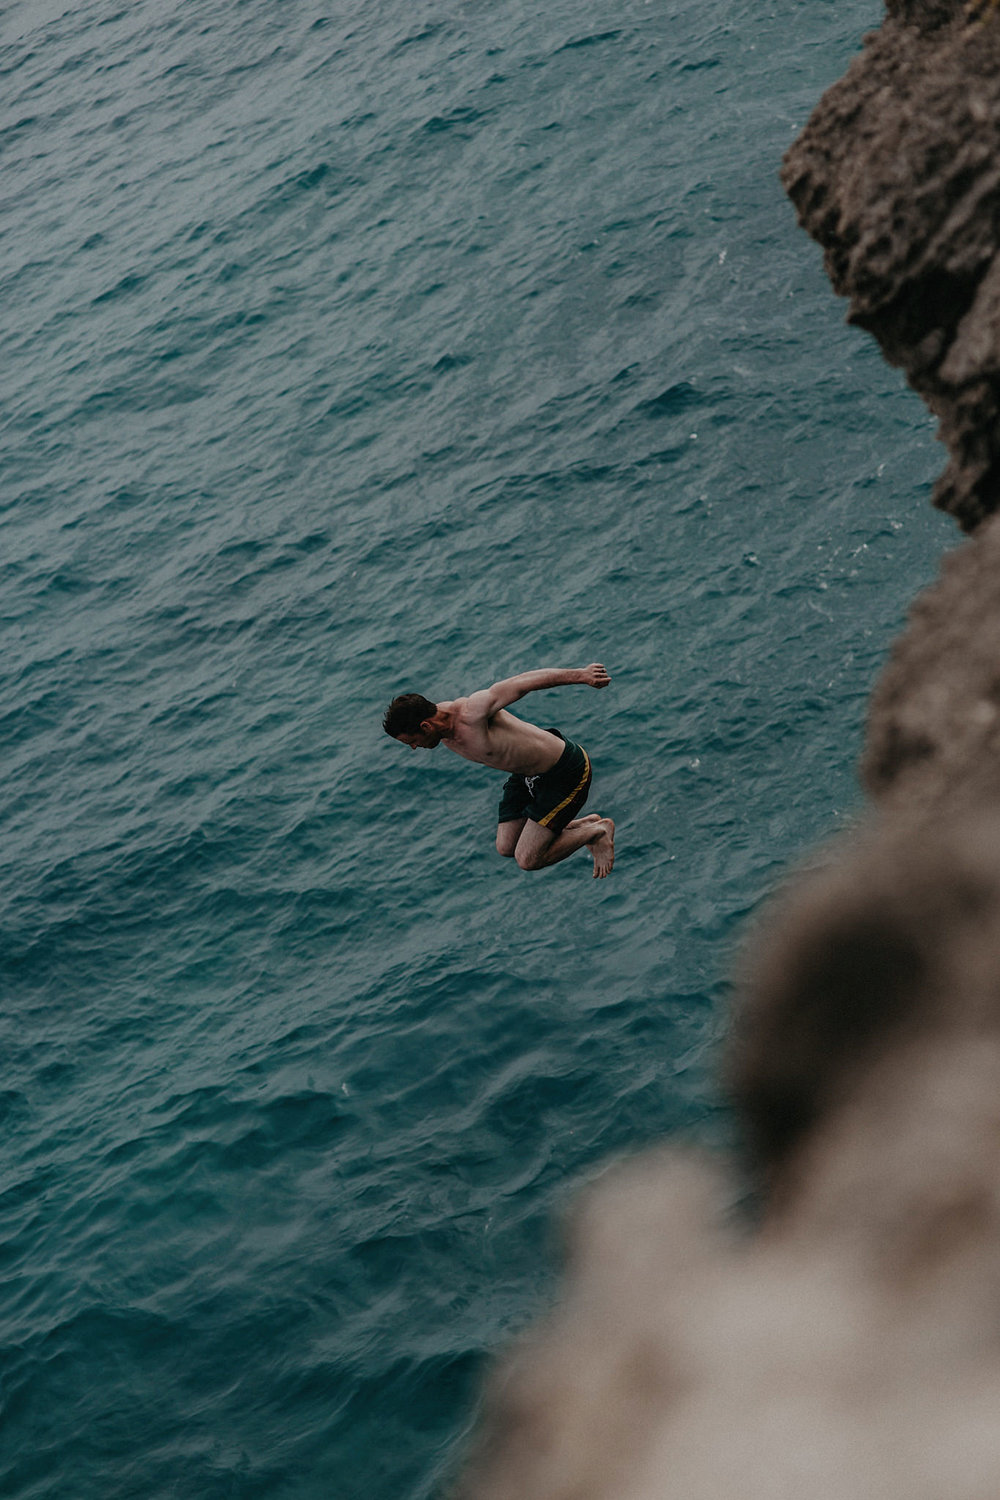 hawaii kauai elopement cliff jumping photo